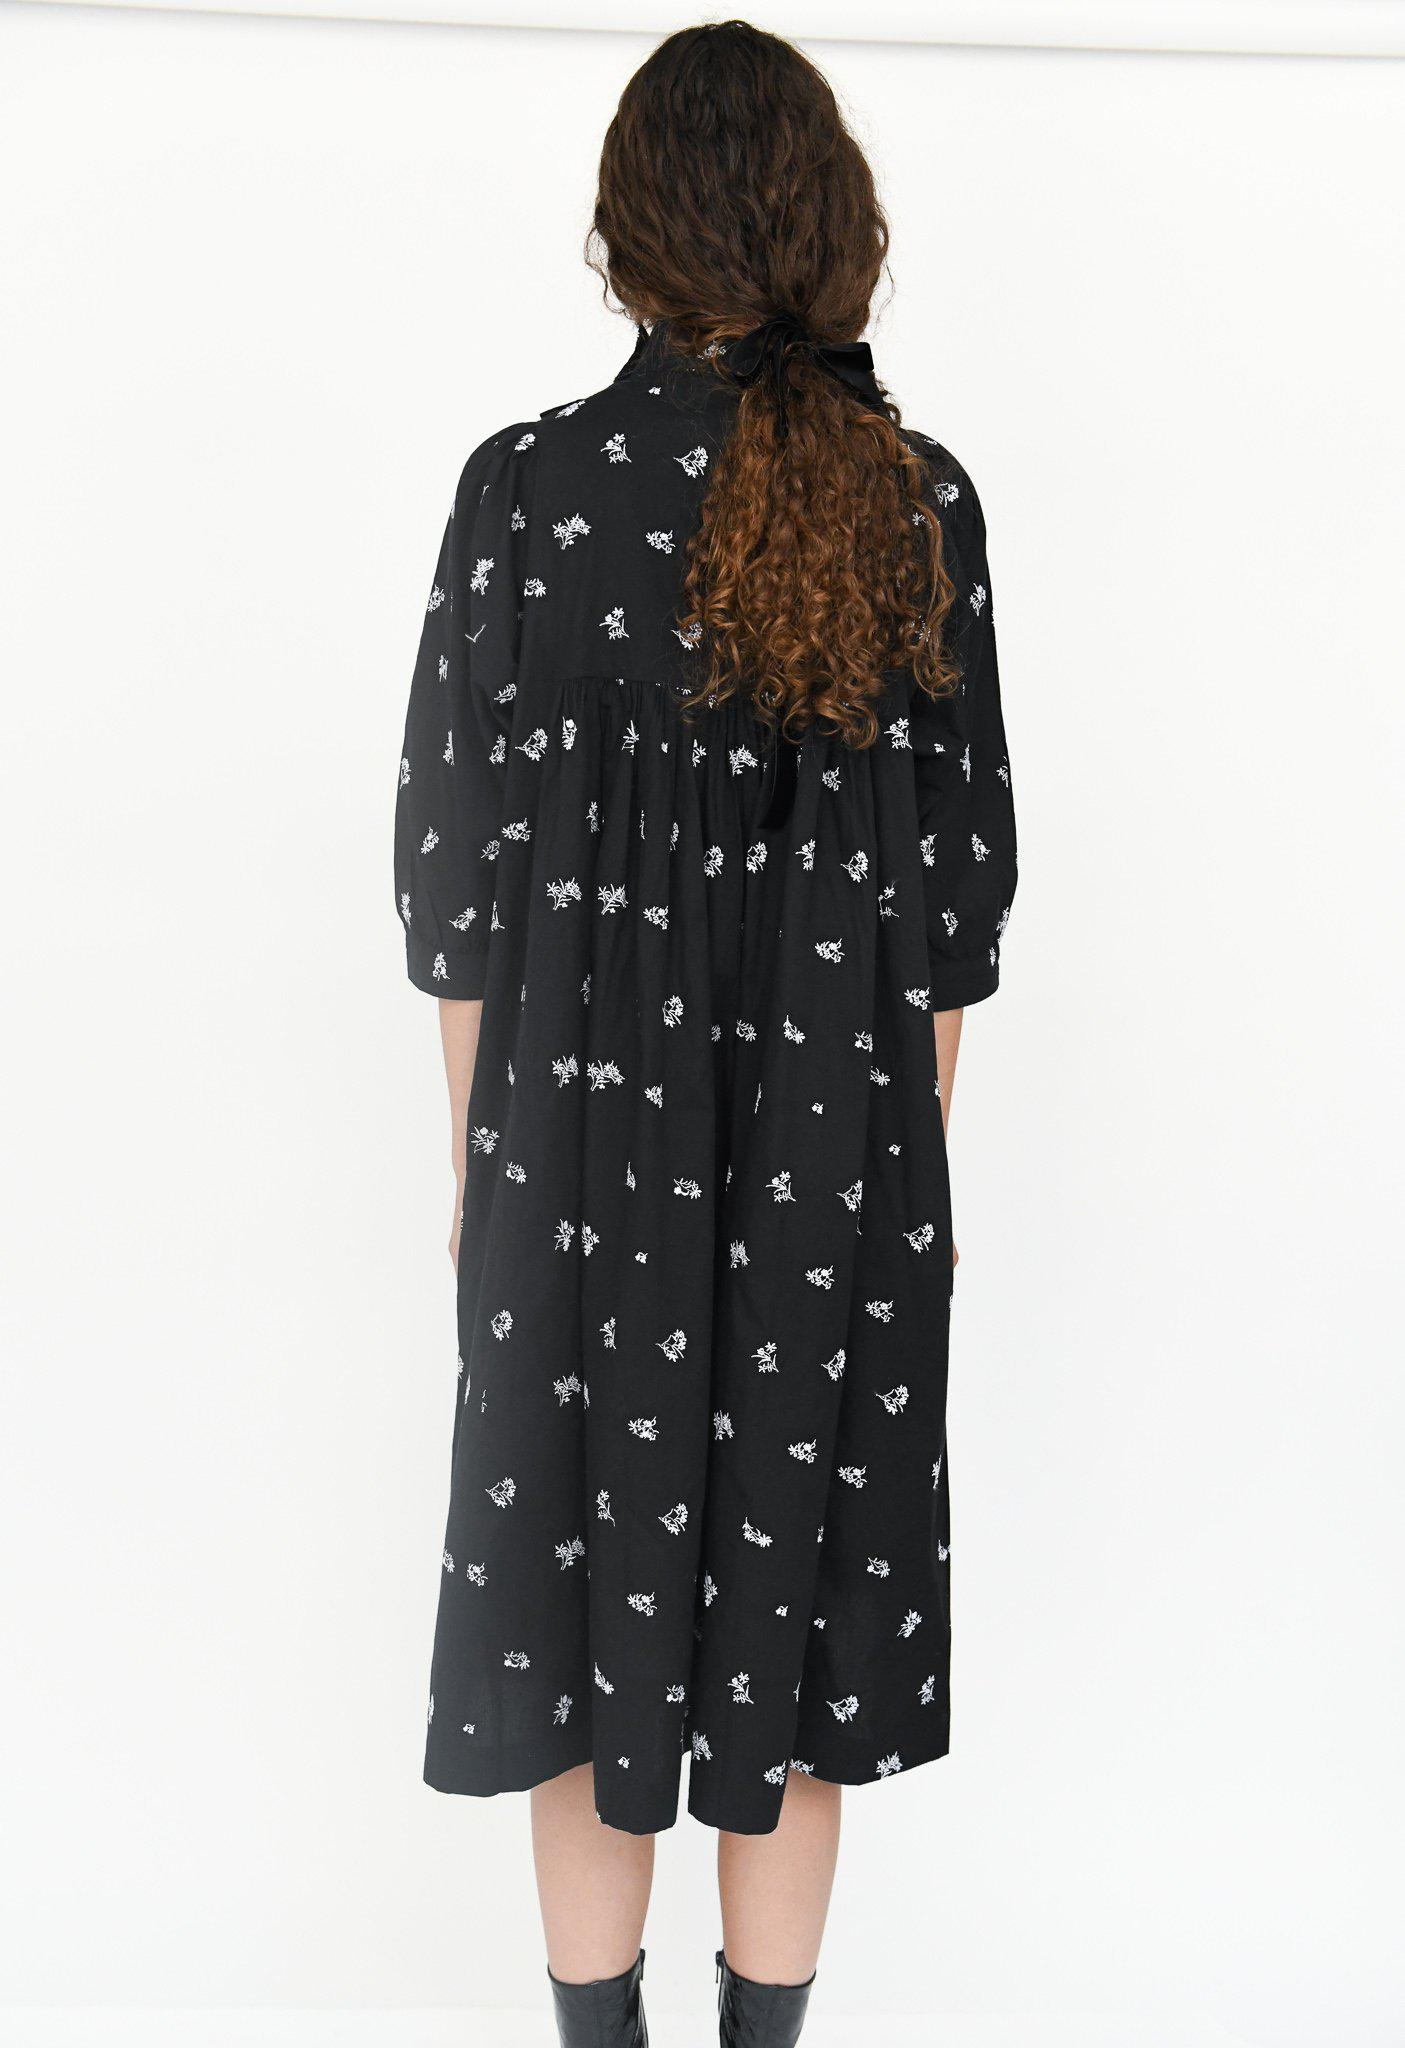 Smock Dress in Black Embroidered Cotton 4